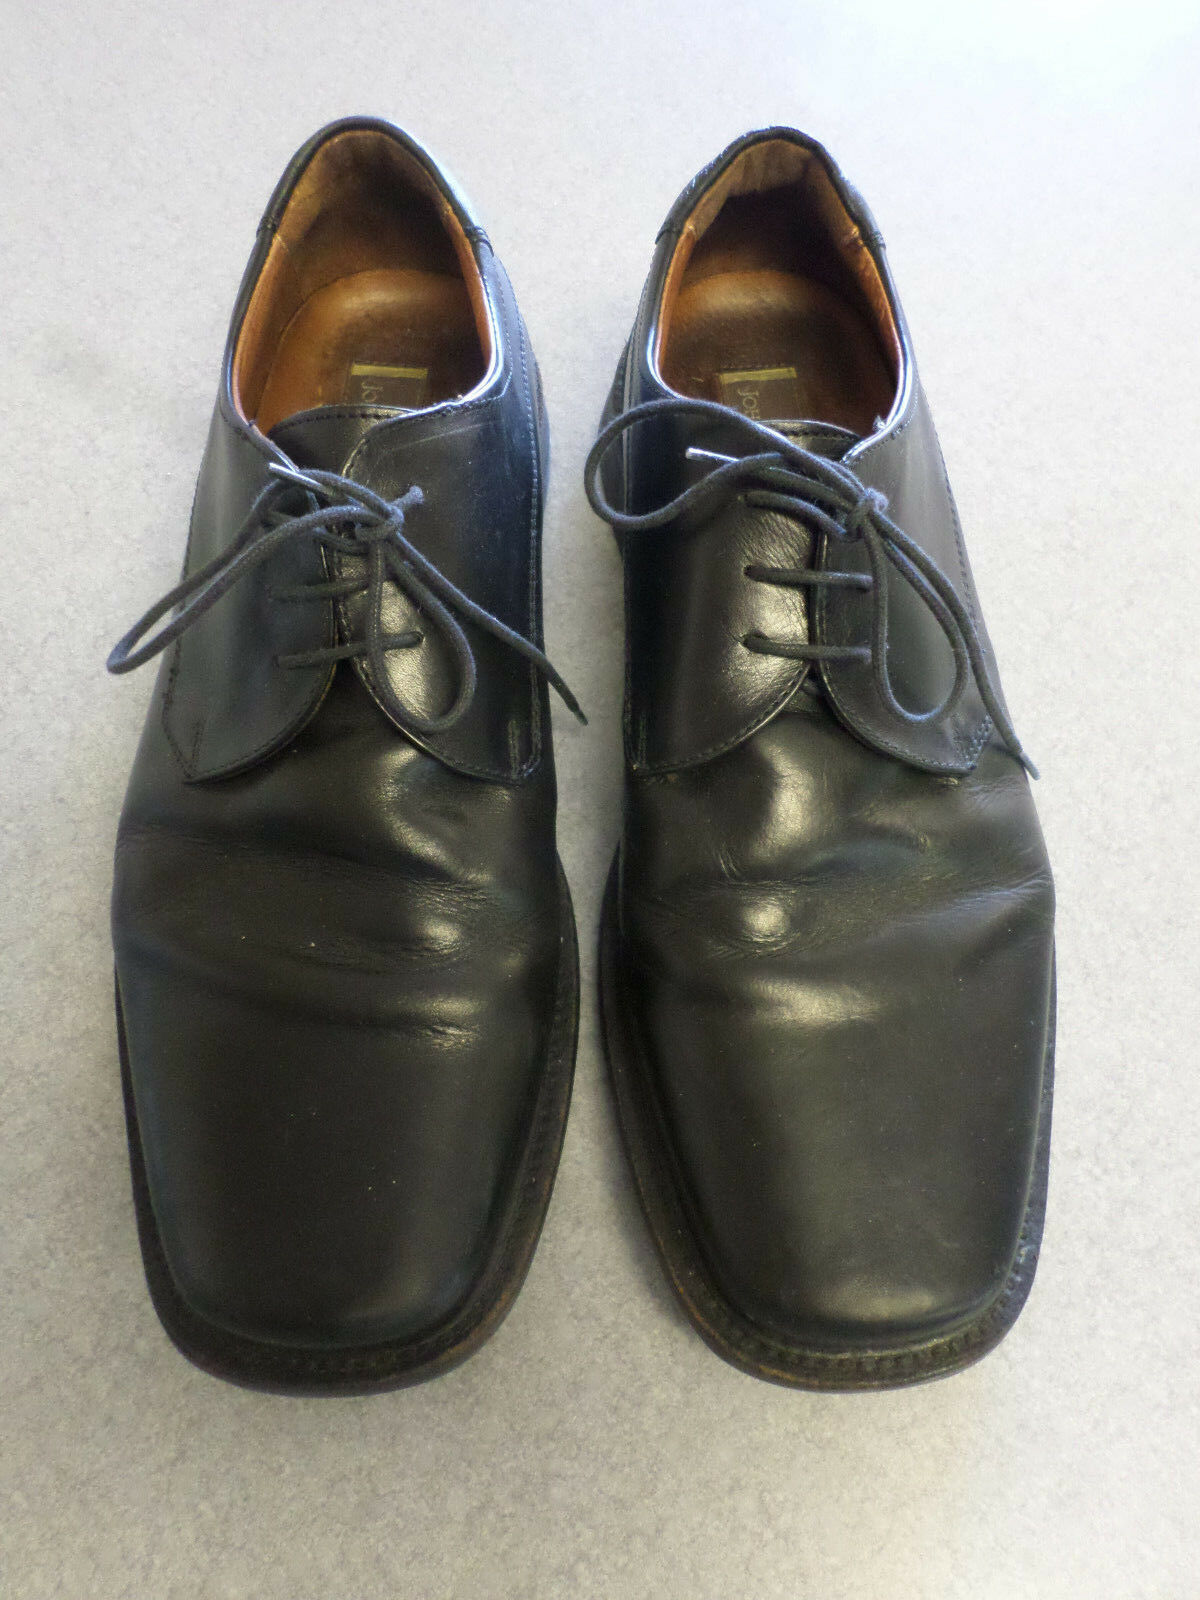 Johnston and Murphy black leather, square toe oxfords, Men's 11 M